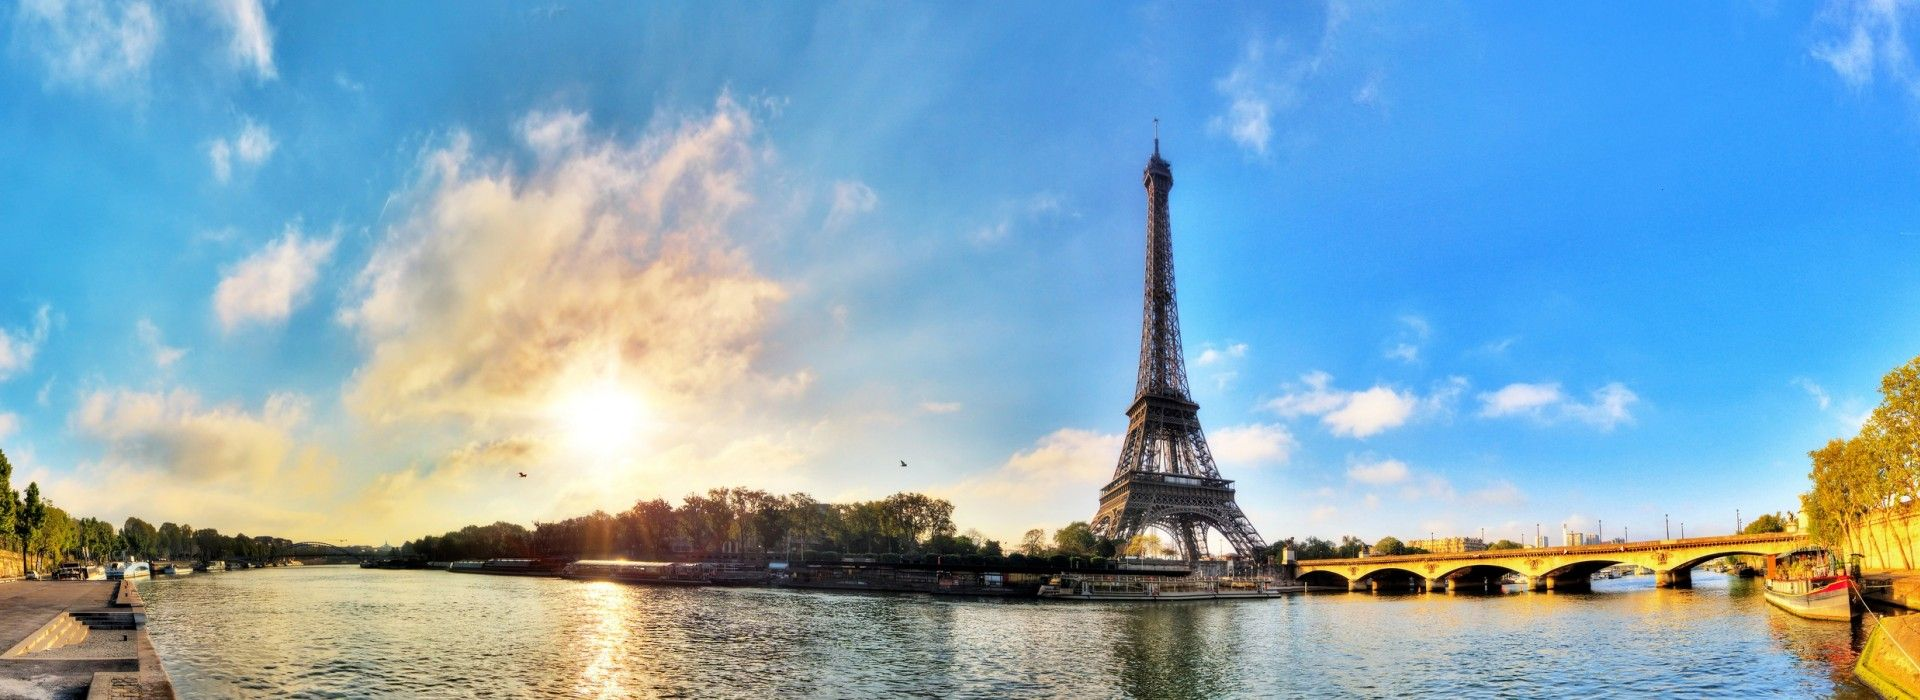 City sightseeing Tours in Paris